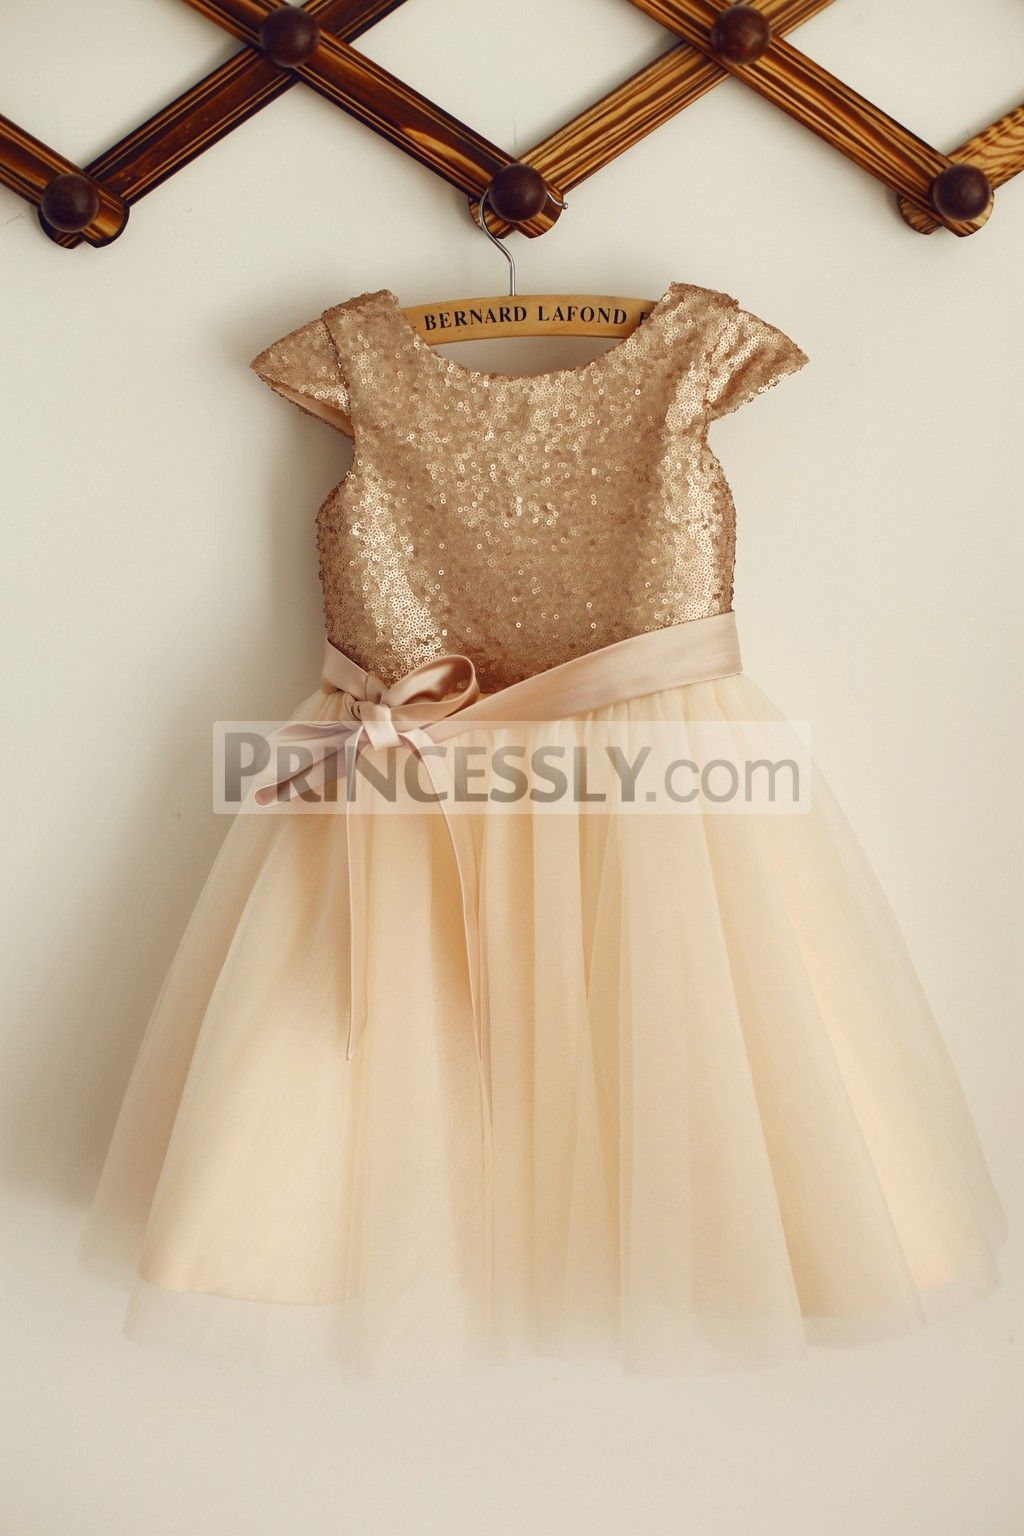 65880477480 Princessly.com-K1003384-Cap Sleeves Champagne Sequin Tulle Wedding Flower  Girl Dress with belt-31